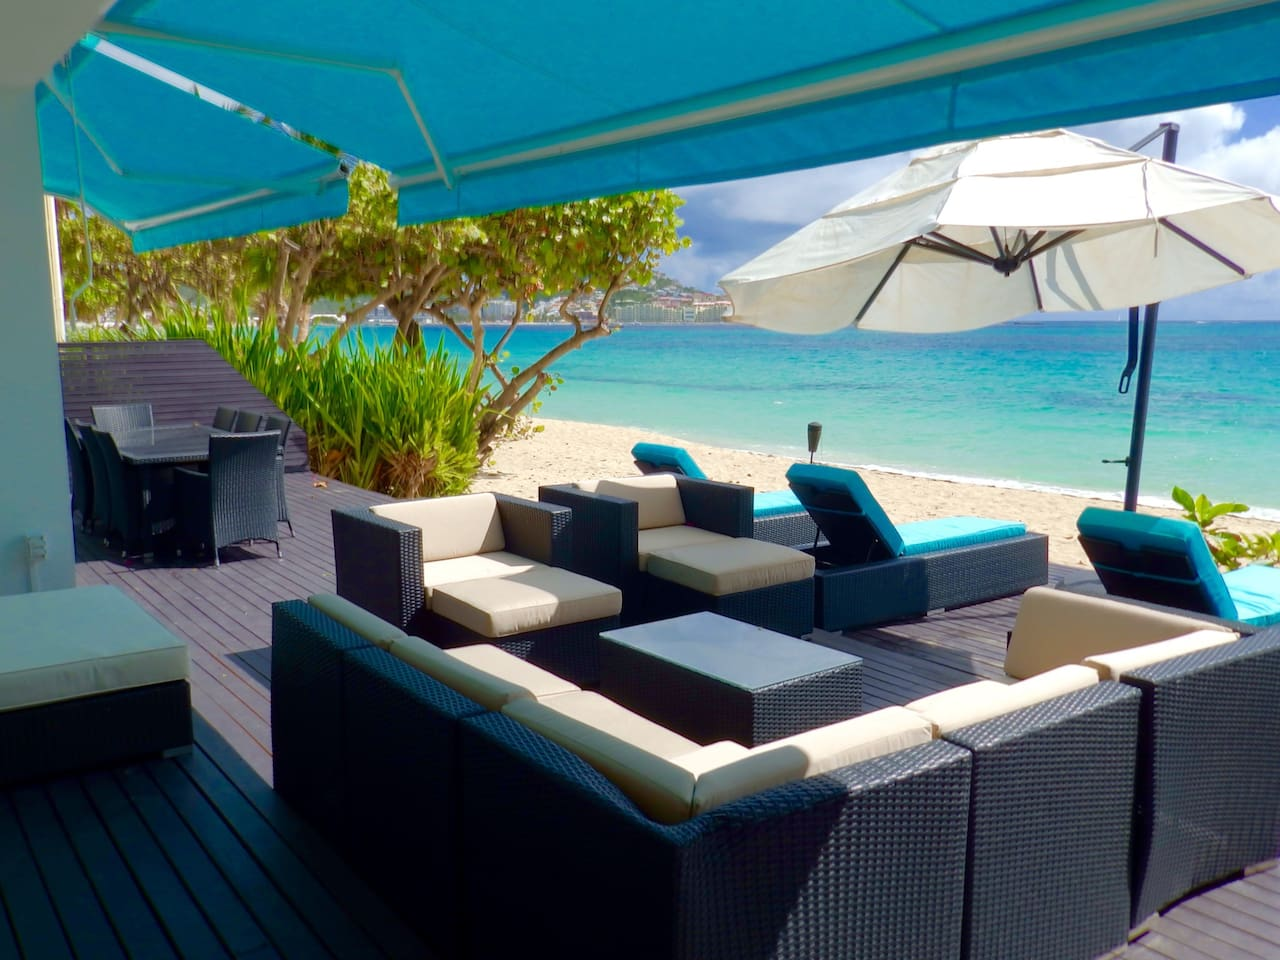 The large beach deck that sits on the beautiful 2 miles of White Sand Beach; offers dining for 8, an ocean lounge with a day bed and 4 beautiful sun chairs overlooking the blue Caribbean Sea.